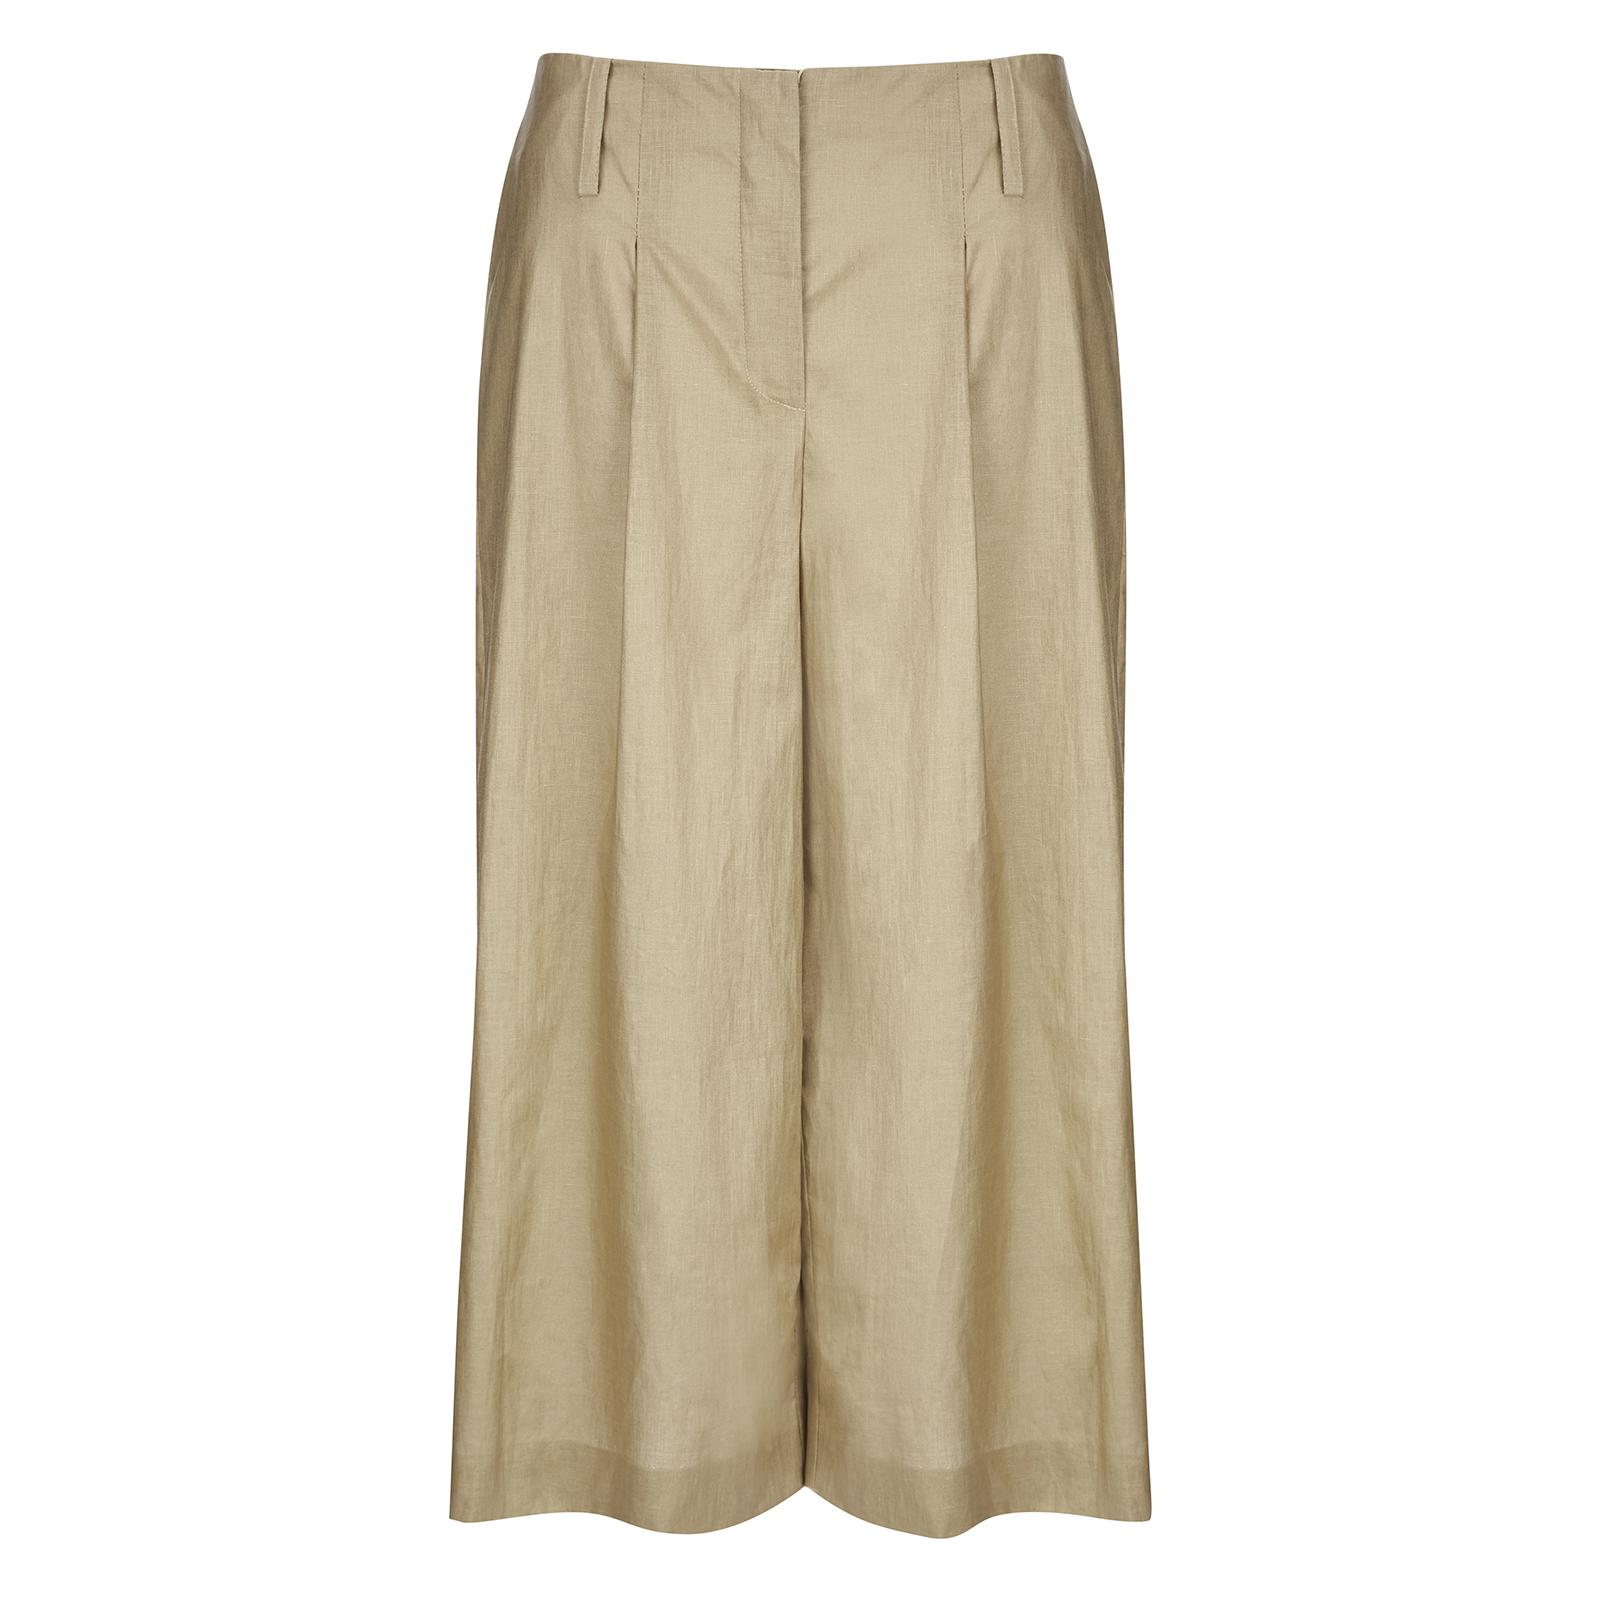 Outlet Lowest Price Pascal Stone Linen Culottes Finery Cheap Sale Official For Sale Top Quality gywSjPn